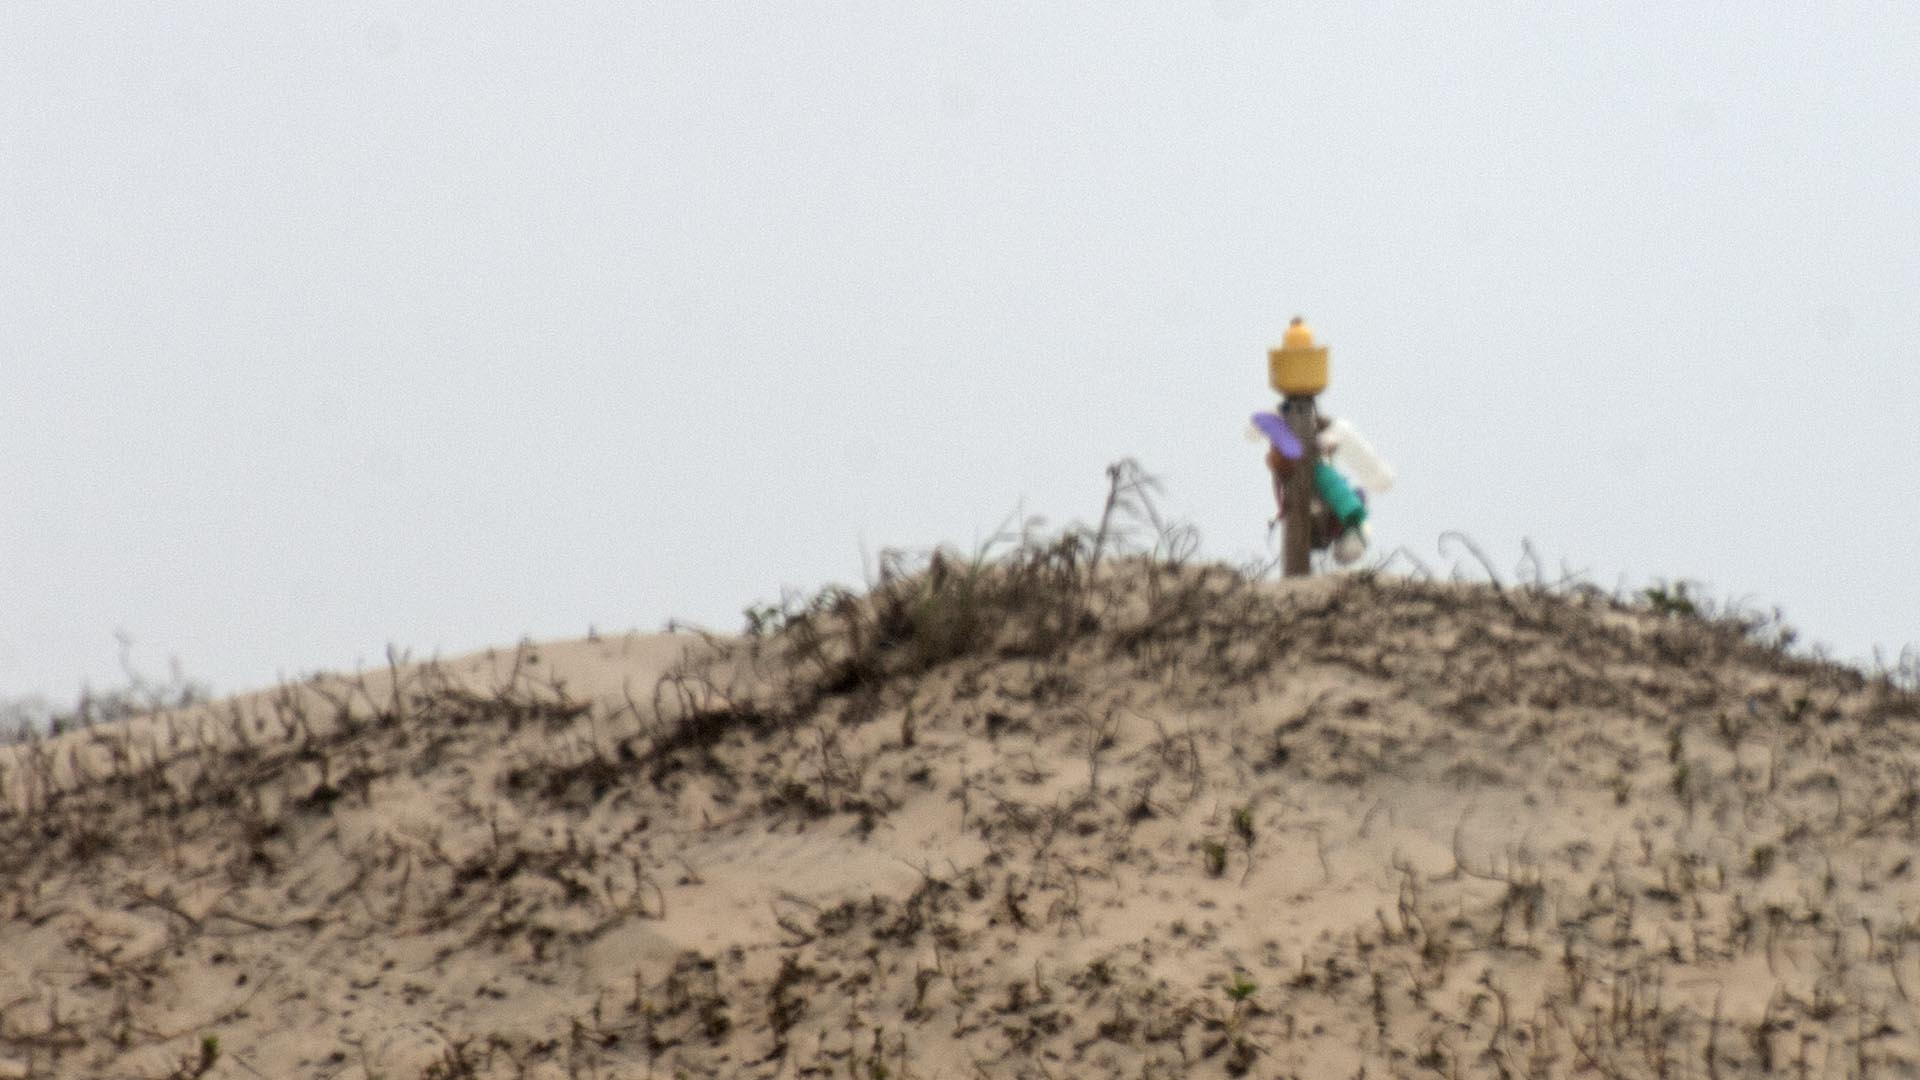 SPI beach sculpture in the dunes tele